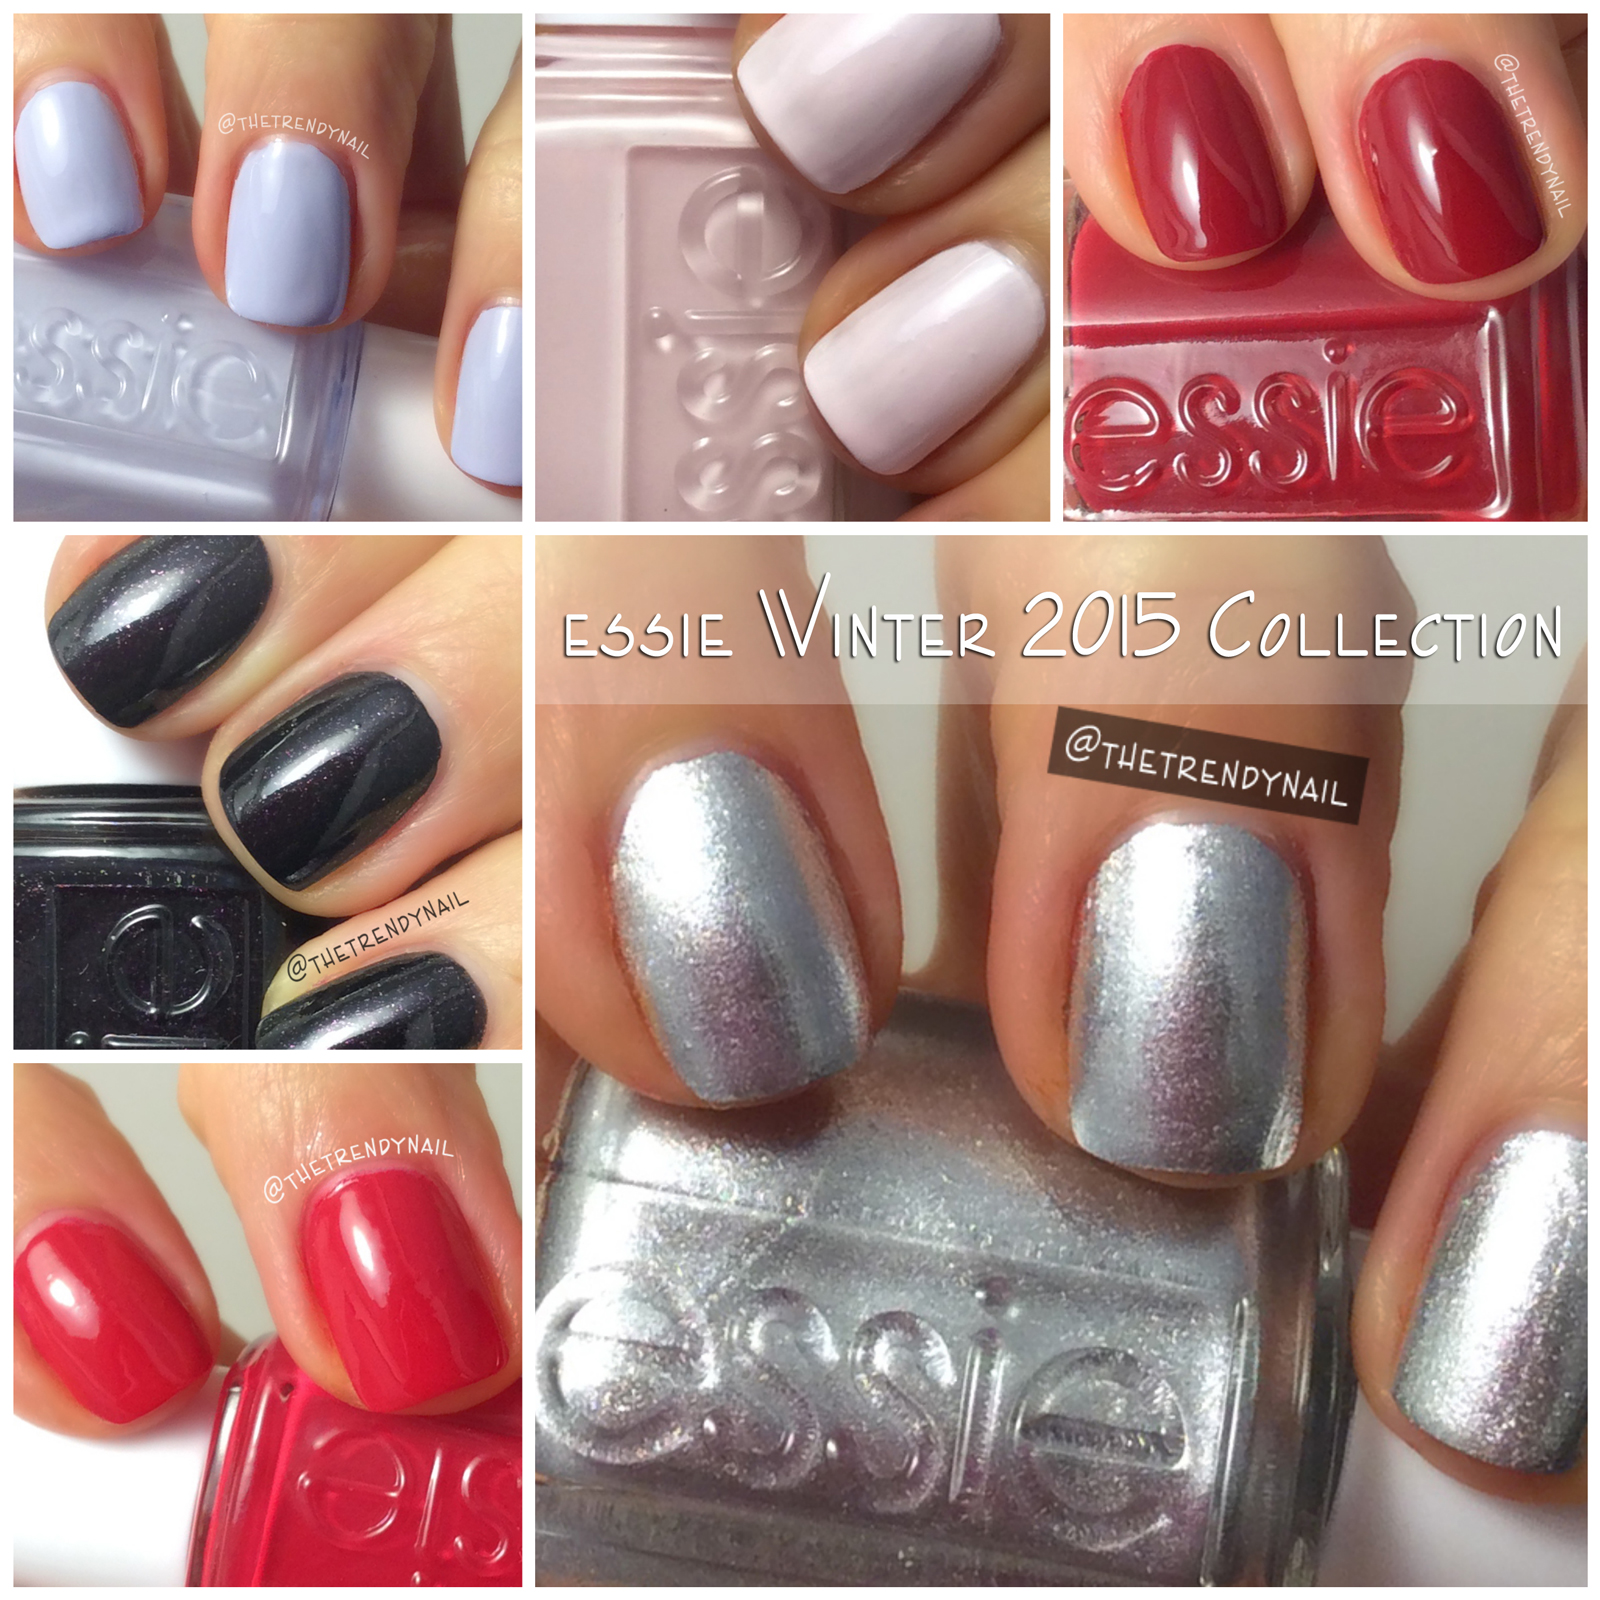 A Closer Look At The Essie Winter 2015 Collection